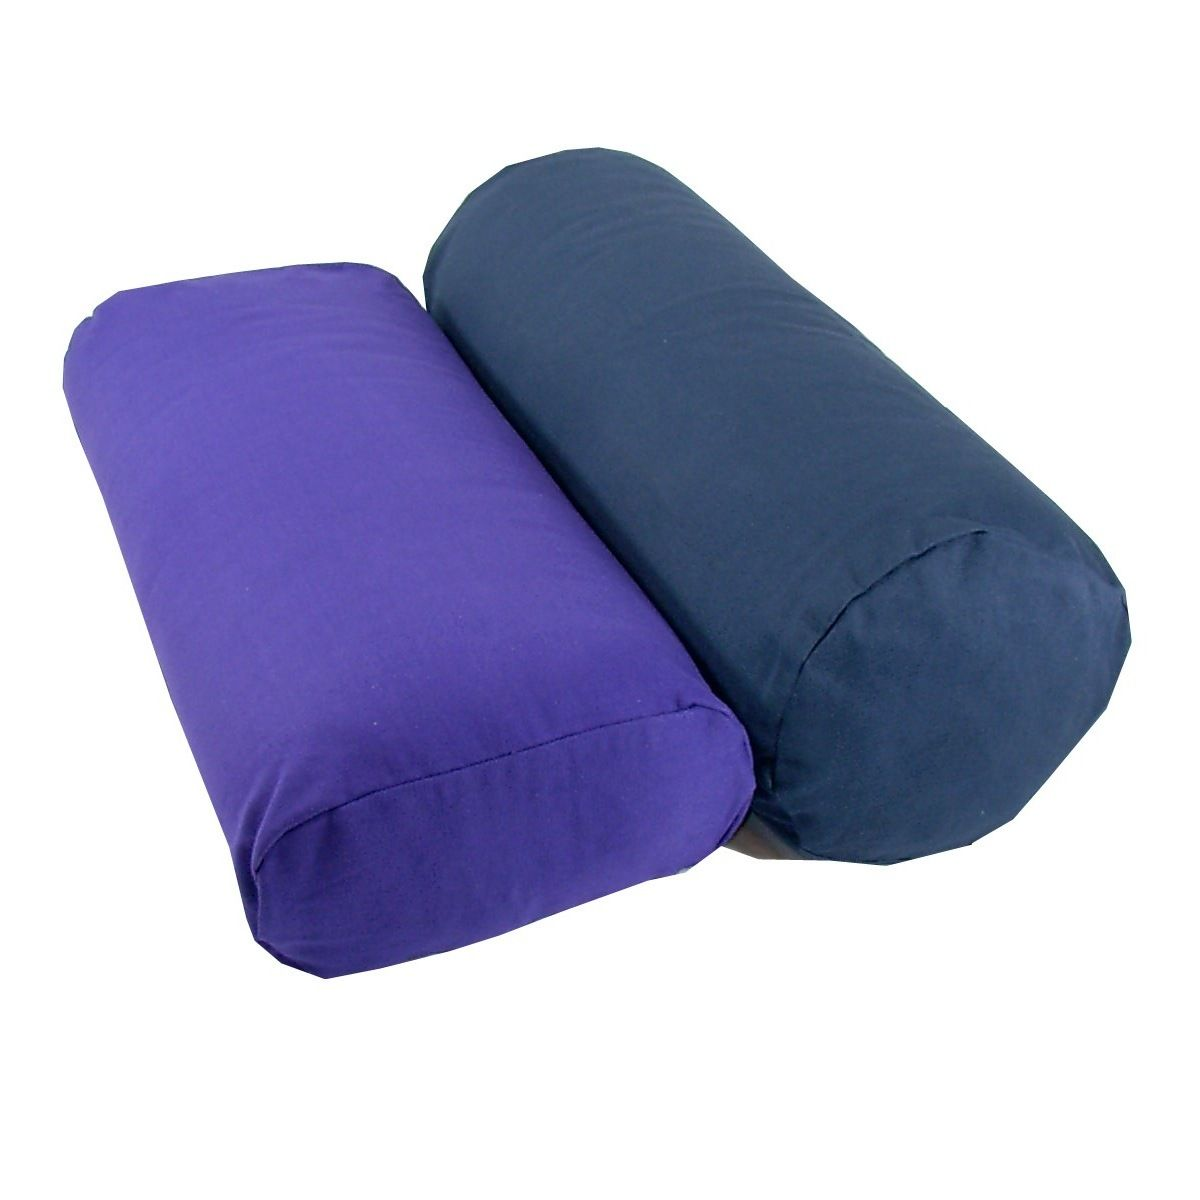 Rectangular Or Round Yoga Bolster Yoga Accessories Yoga Bolster Yoga